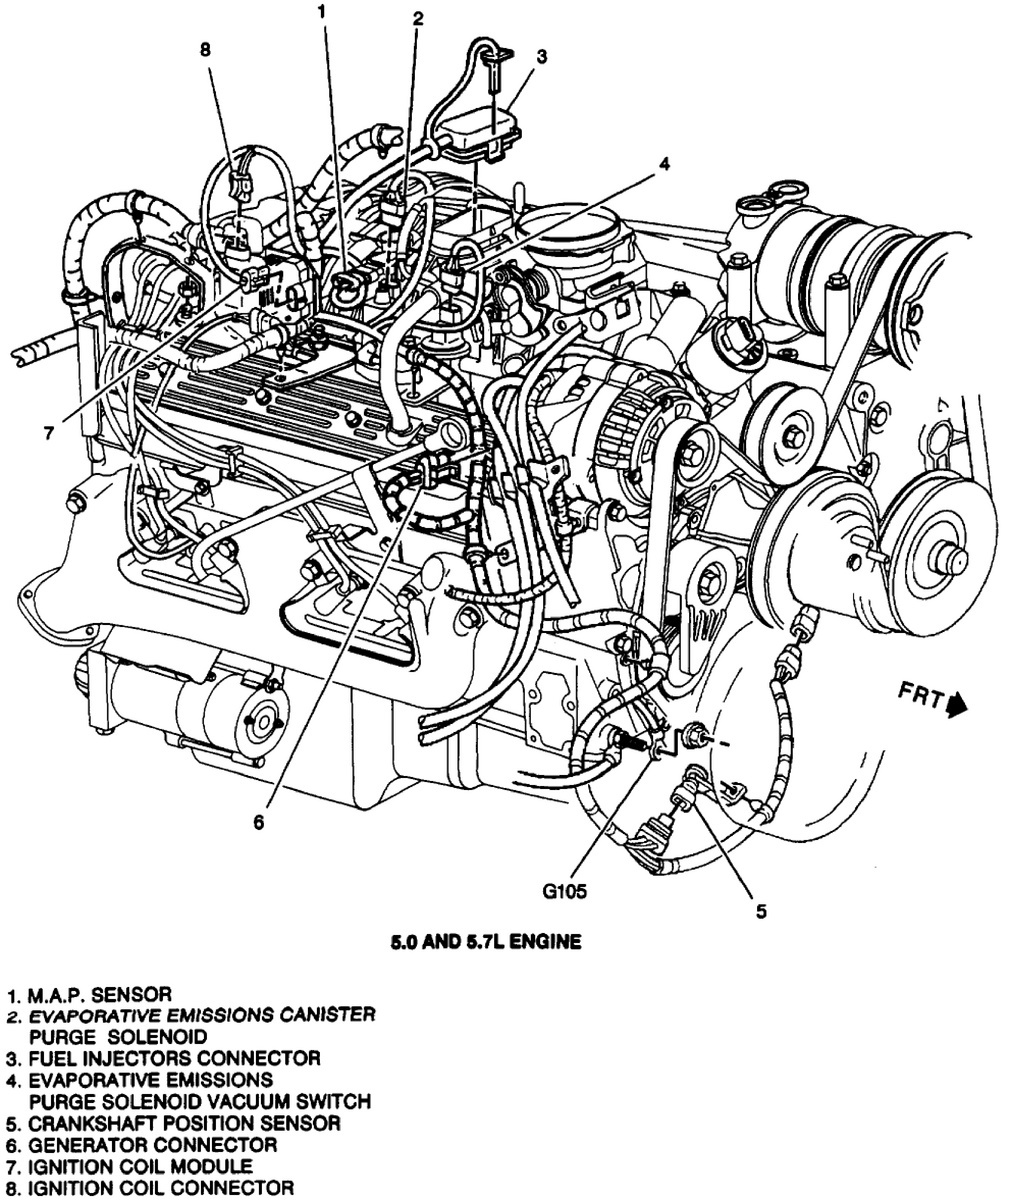 97 s10 engine diagram online schematics wiring diagrams u2022 rh pushbots sender com chevy s10 motor diagram chevrolet s10 engine diagram